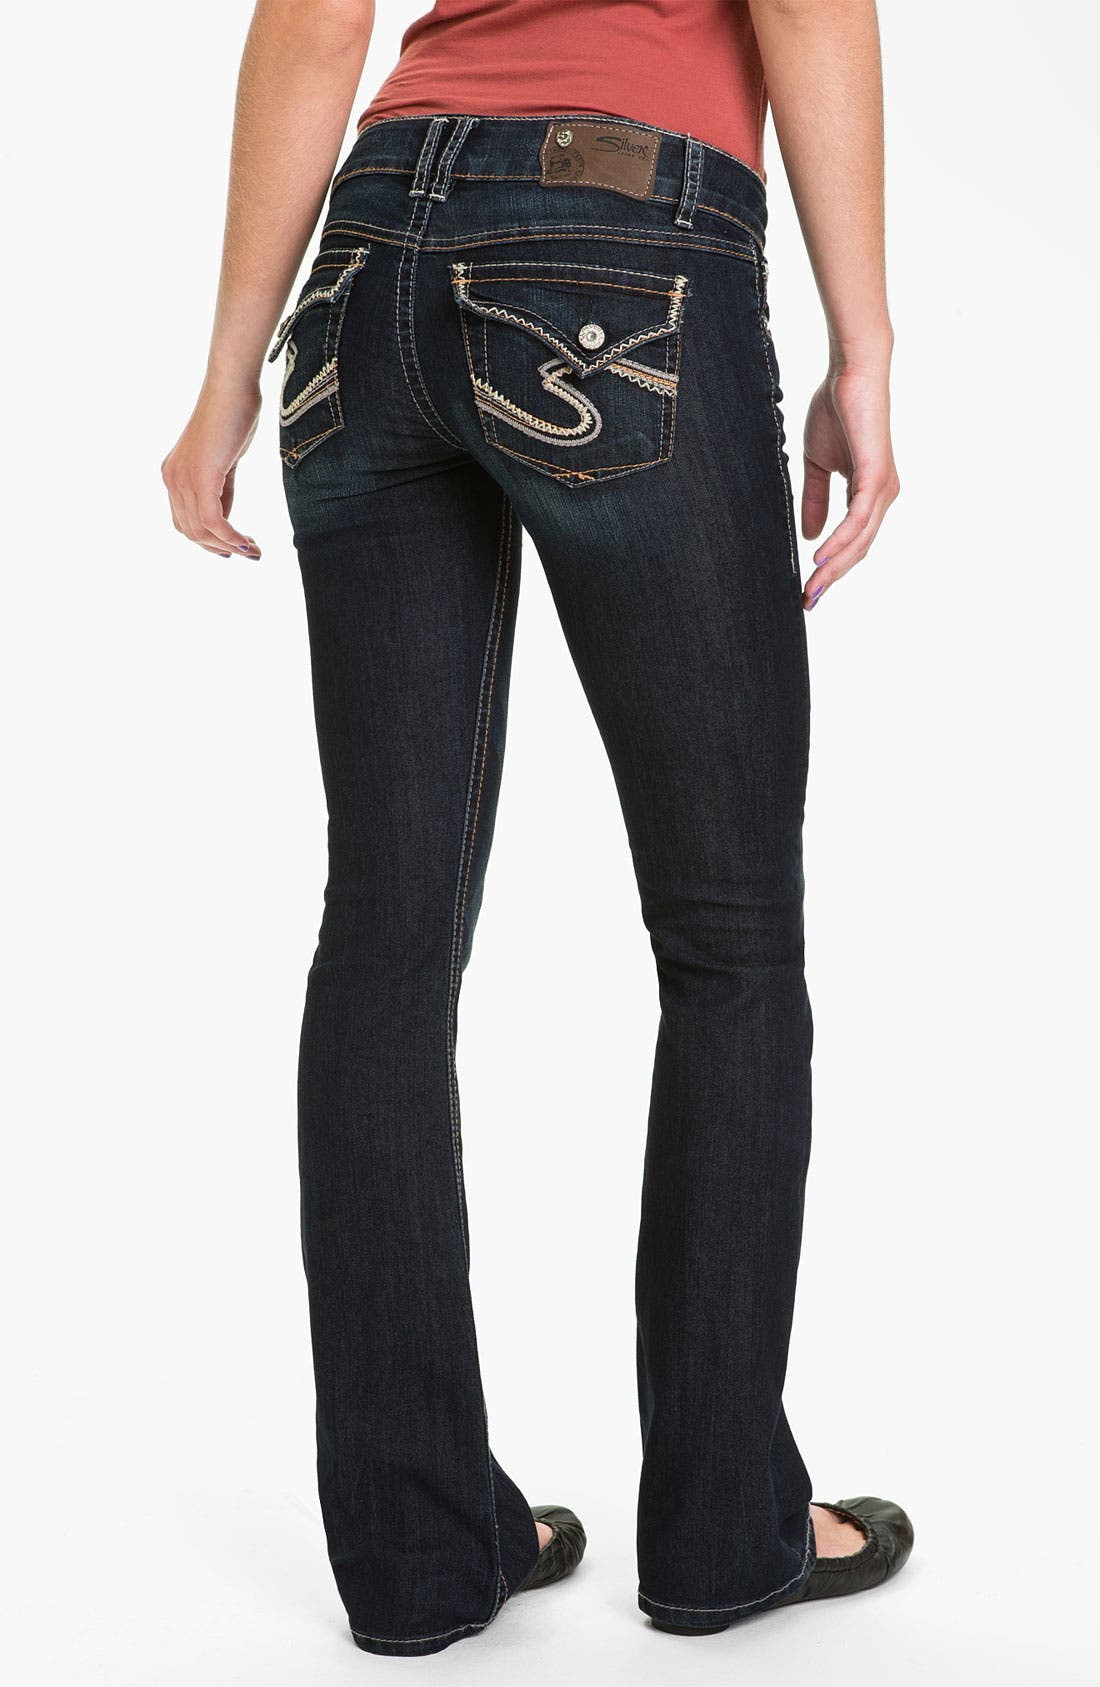 Alternate Image 1 Selected - Silver Jeans Co. 'Dawson' Flare Leg Jeans (Juniors)